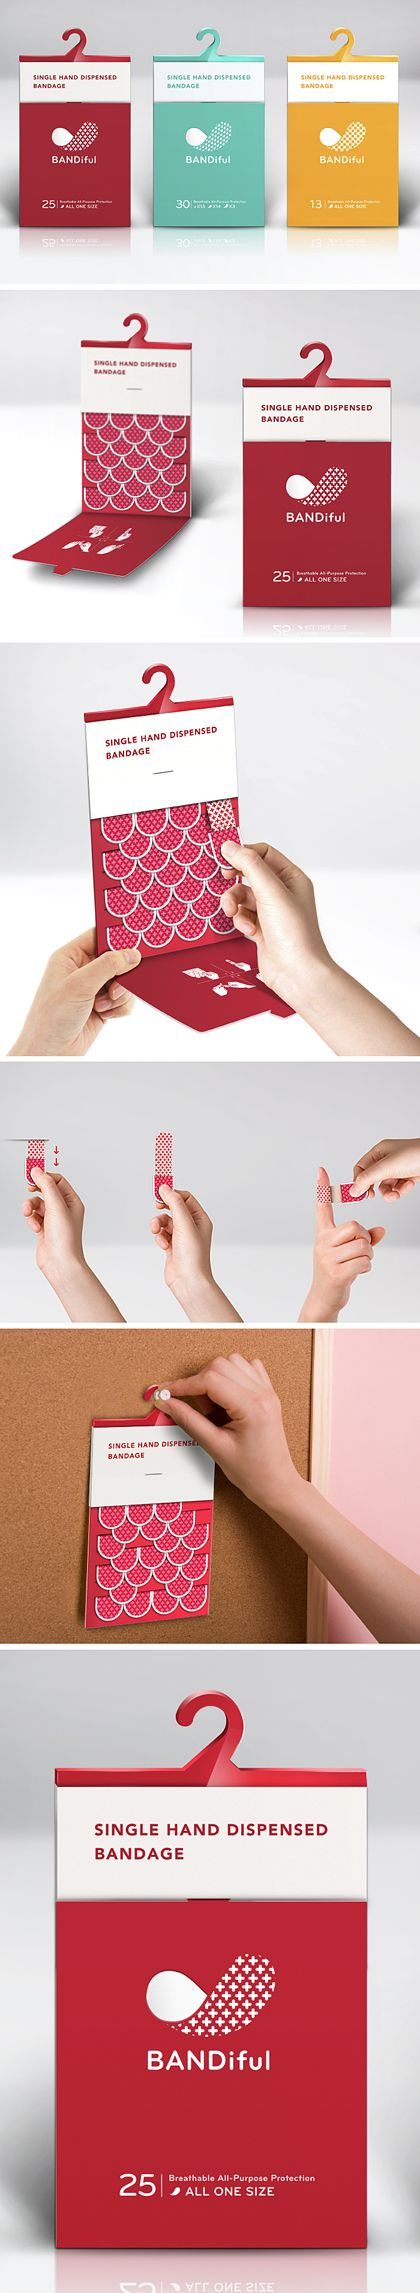 The new age of band-aid #packaging Bandiful : ) PD